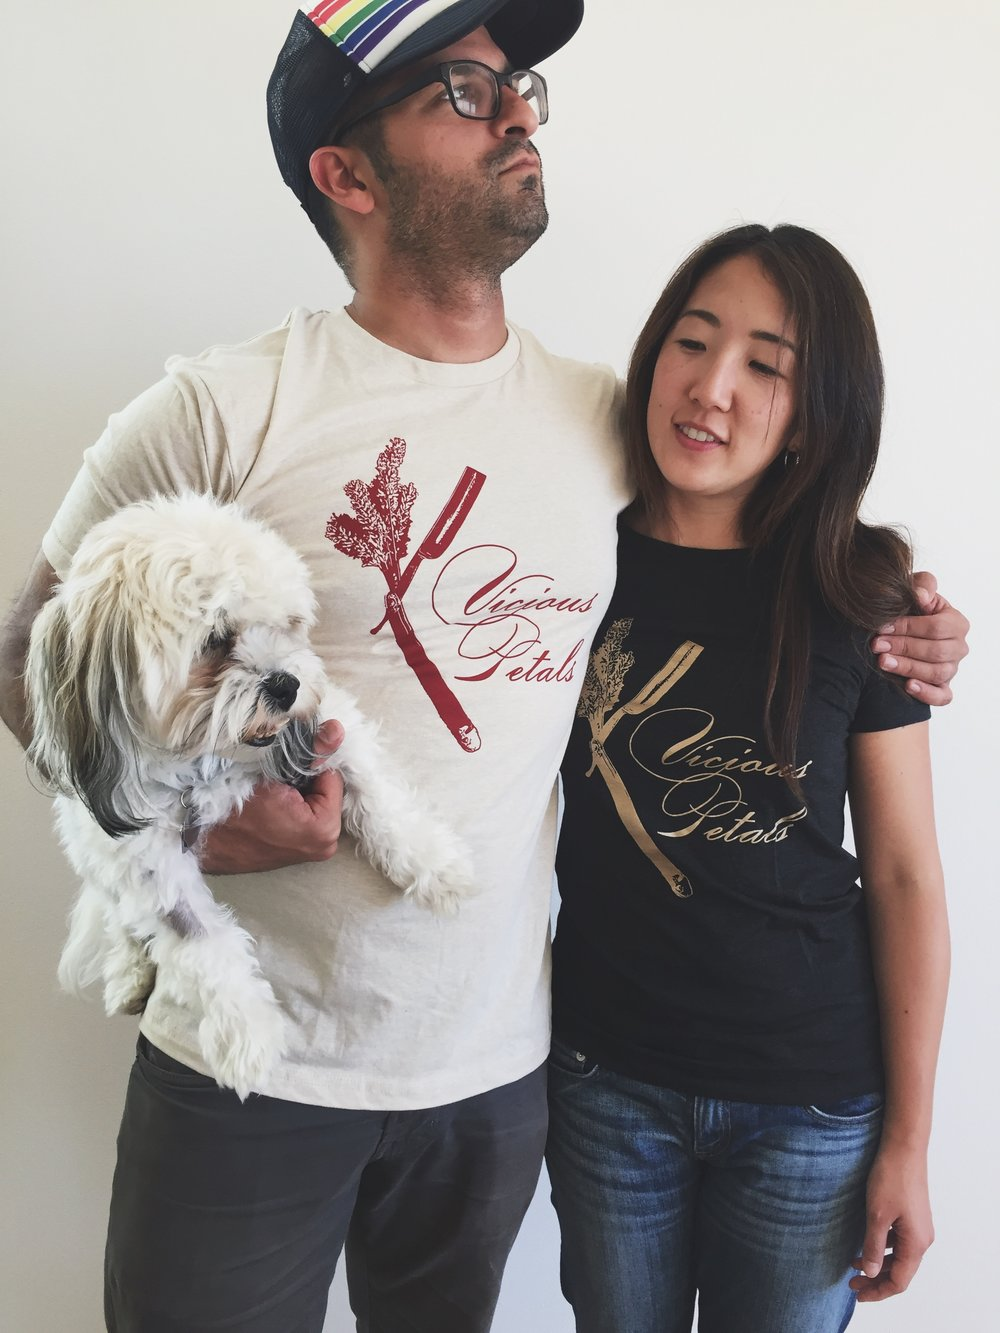 Yoko and Ravi stylin' in our new Ts. Be like these cool kids and grab one this Saturday at the Tractor! (Fluffy pup not included.)